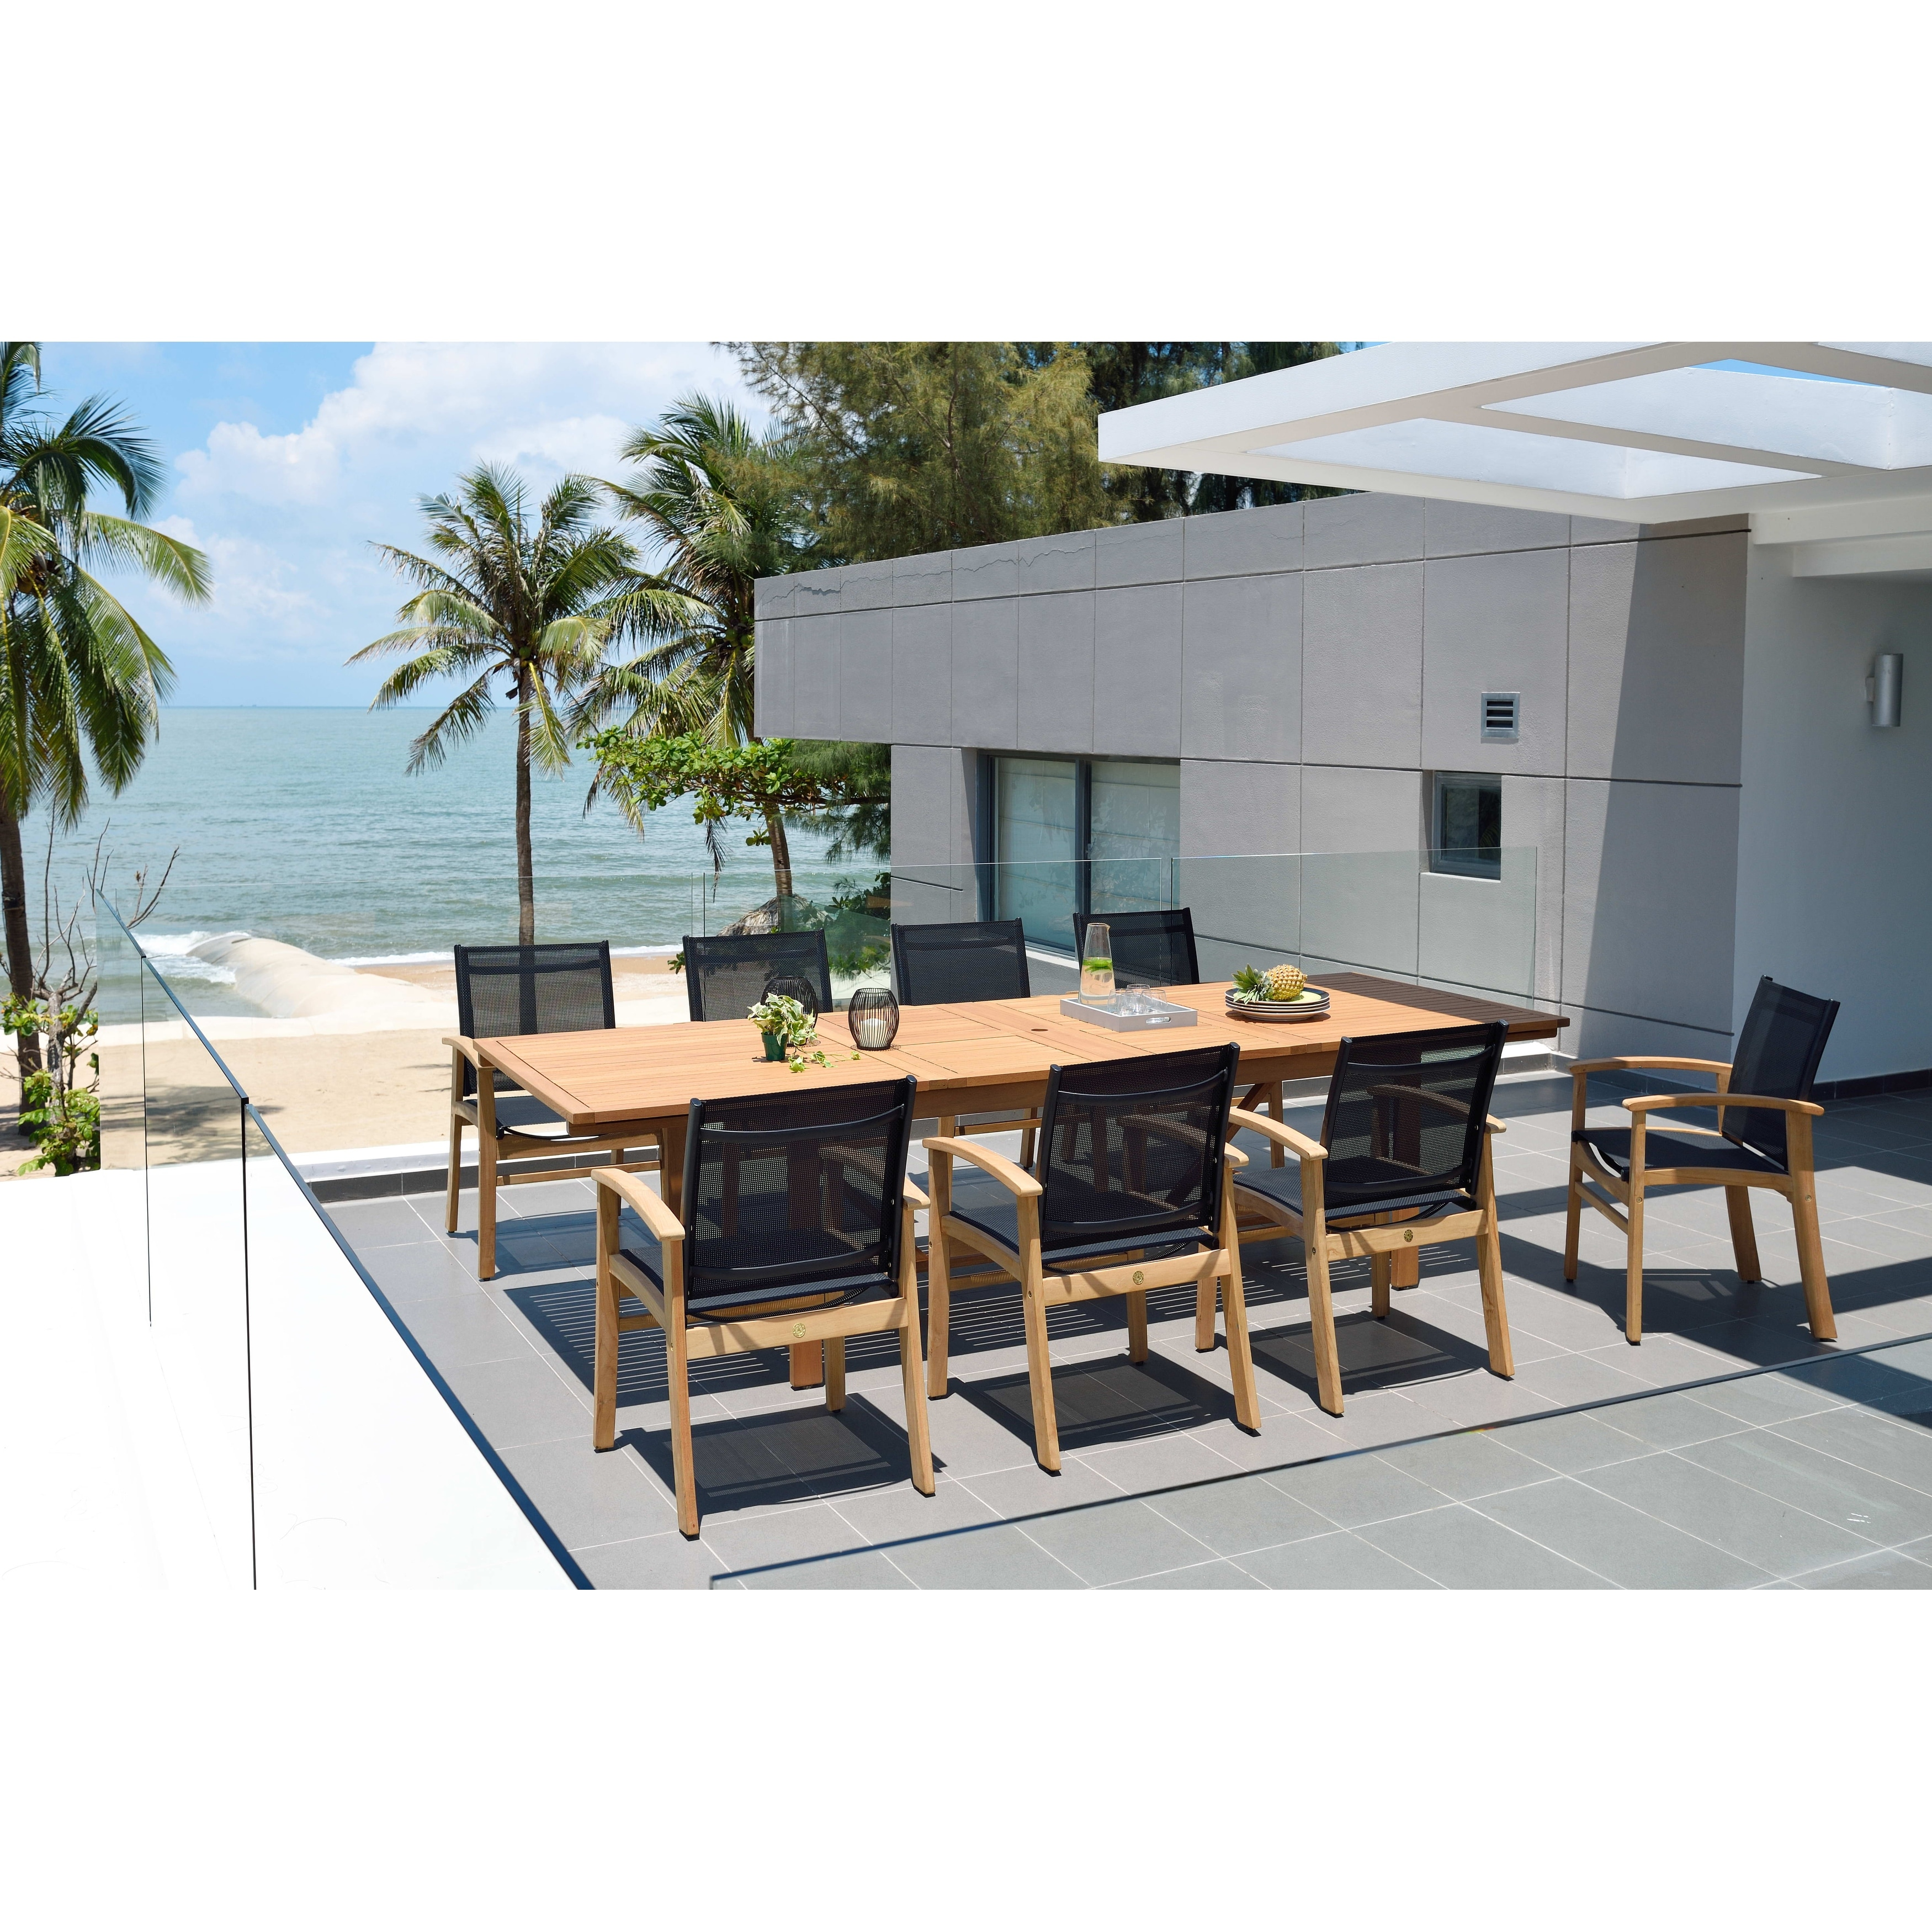 Shop Black Friday Deals On Life Style Garden 9 Piece Teak Finish Patio Dining Set Black Chairs Overstock 31027316